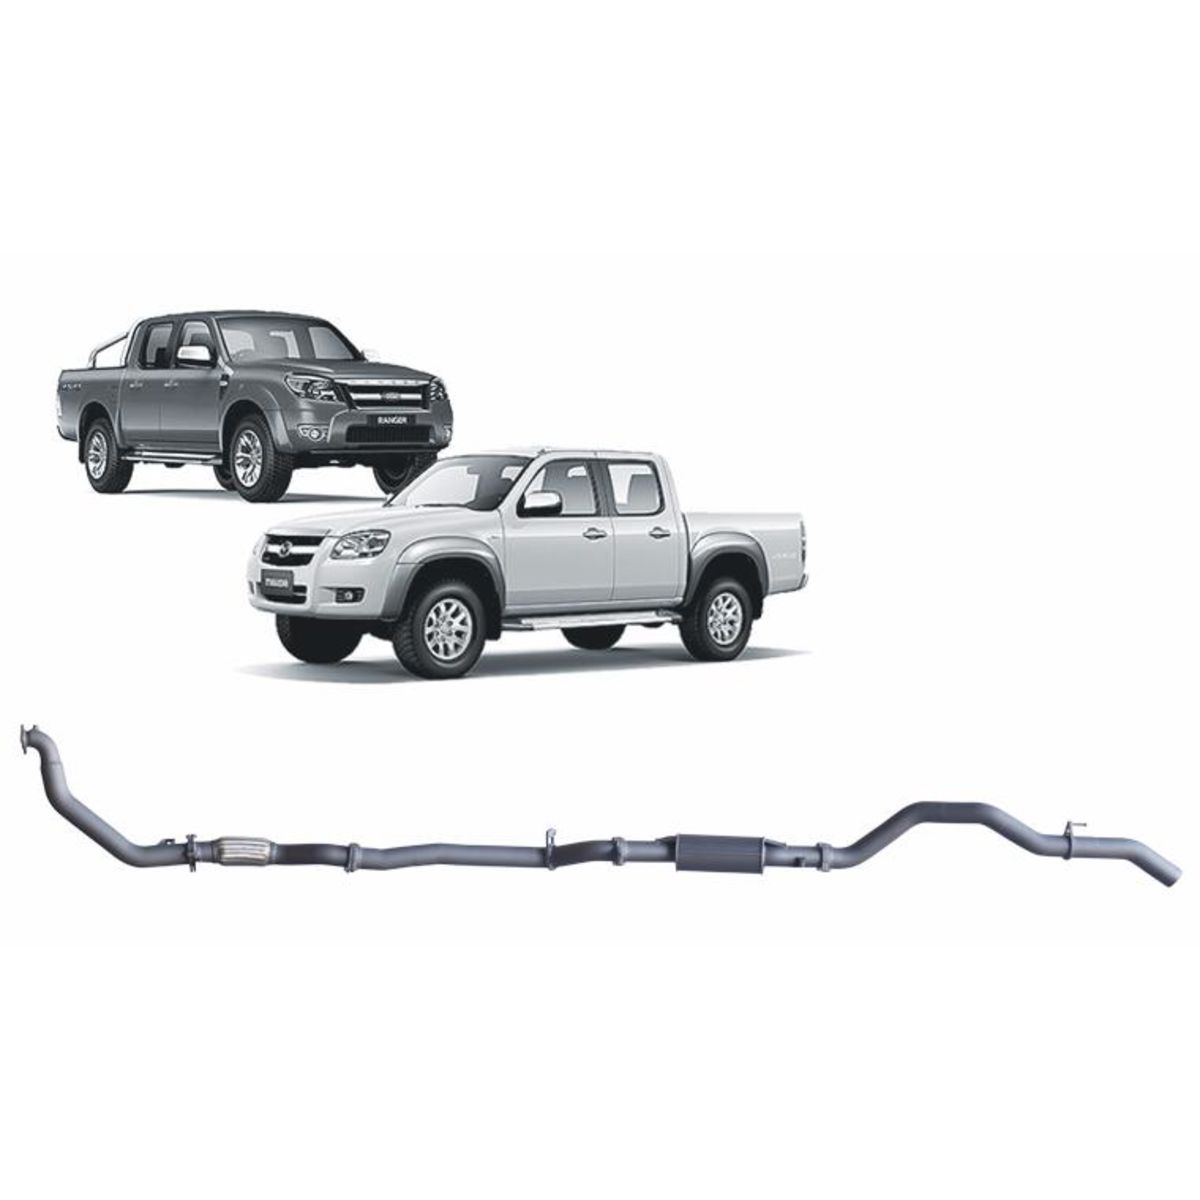 Redback Extreme Duty Exhaust to suit Ford Ranger (01/2006 - 08/2011), Mazda BT-50 (11/2006 - 10/2011)